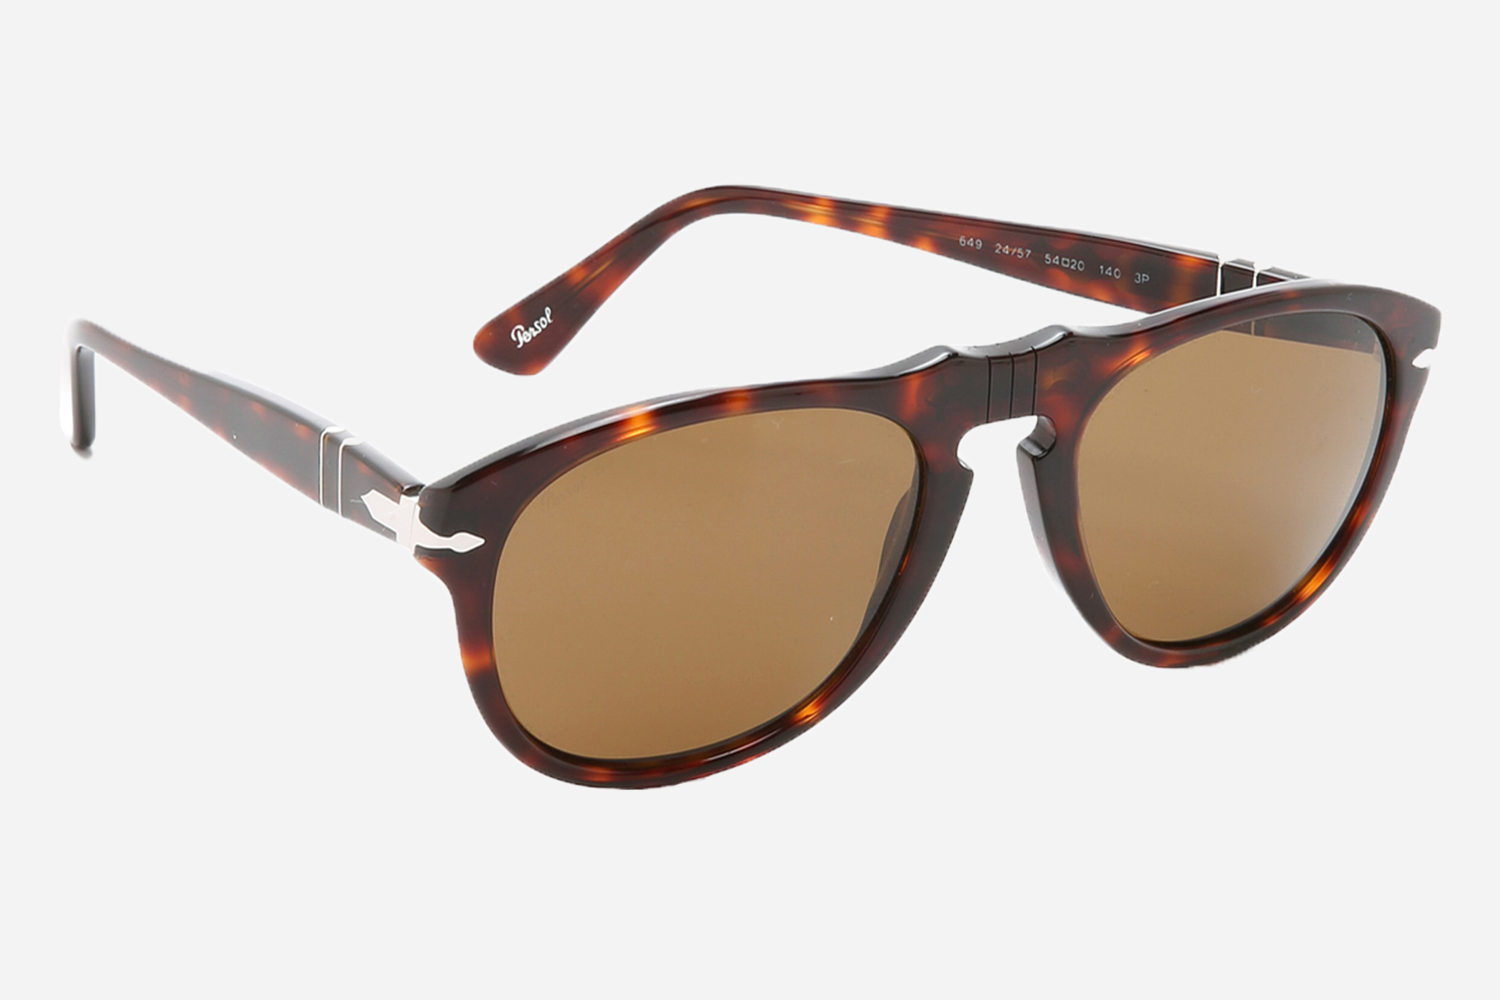 Classic Persol Sunglasses Are Discounted at East Dane